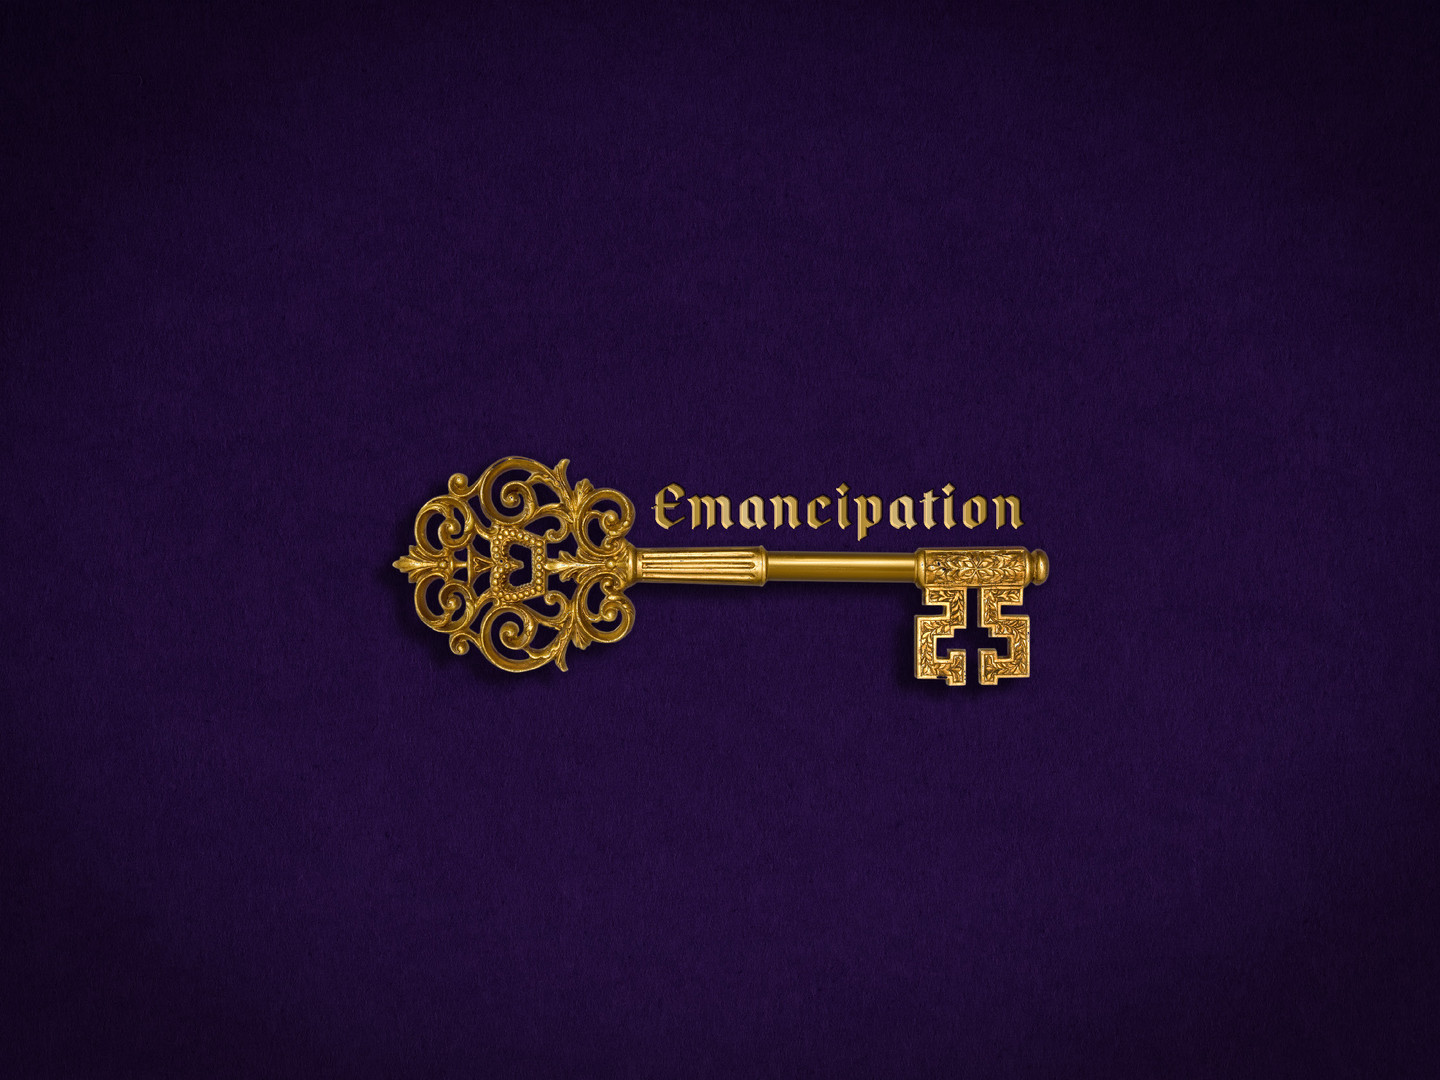 11 Emancipation_Page_1.jpg